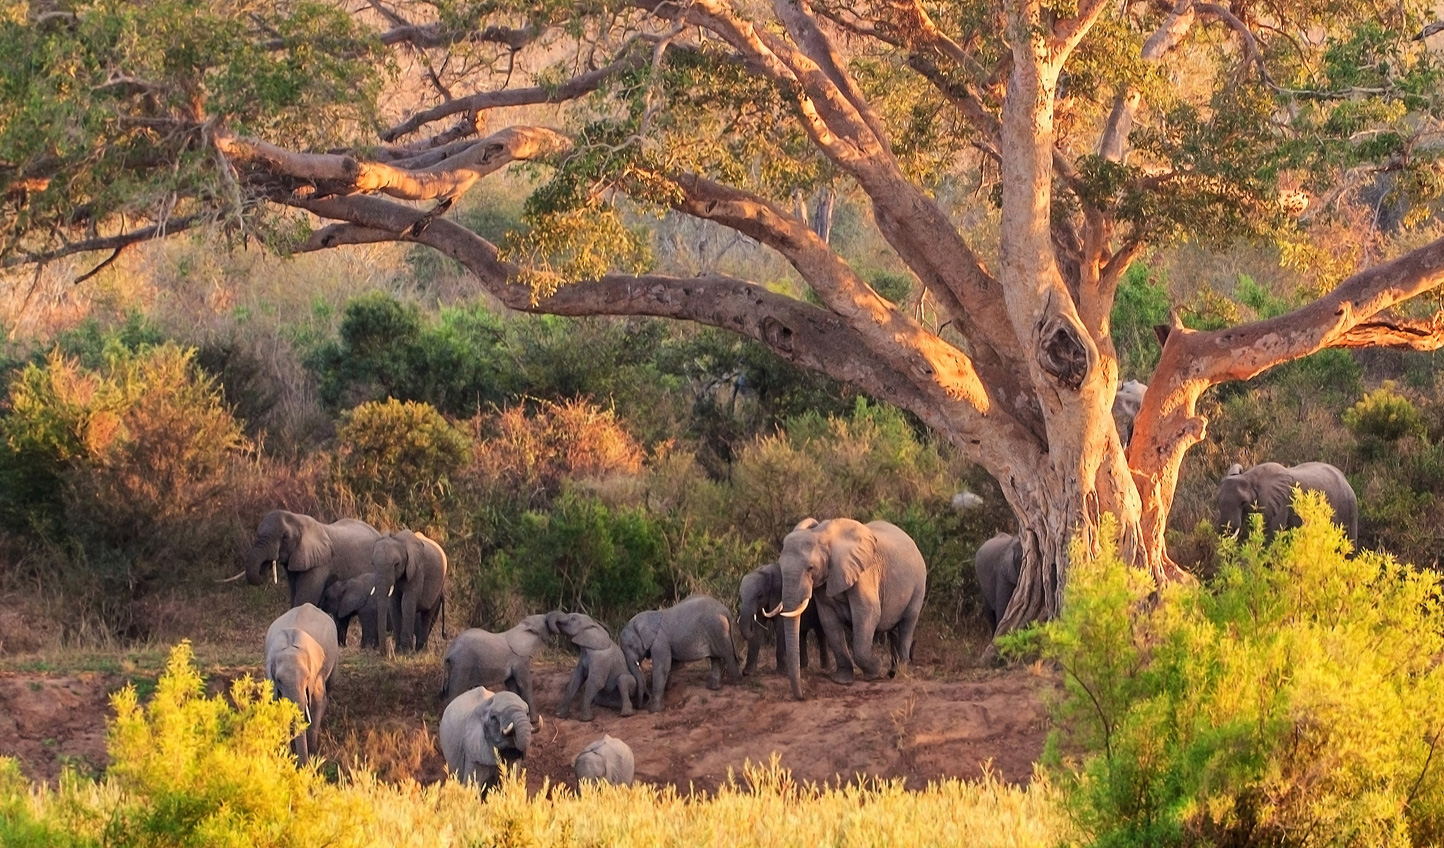 Unforgettable moments await on your South African safari